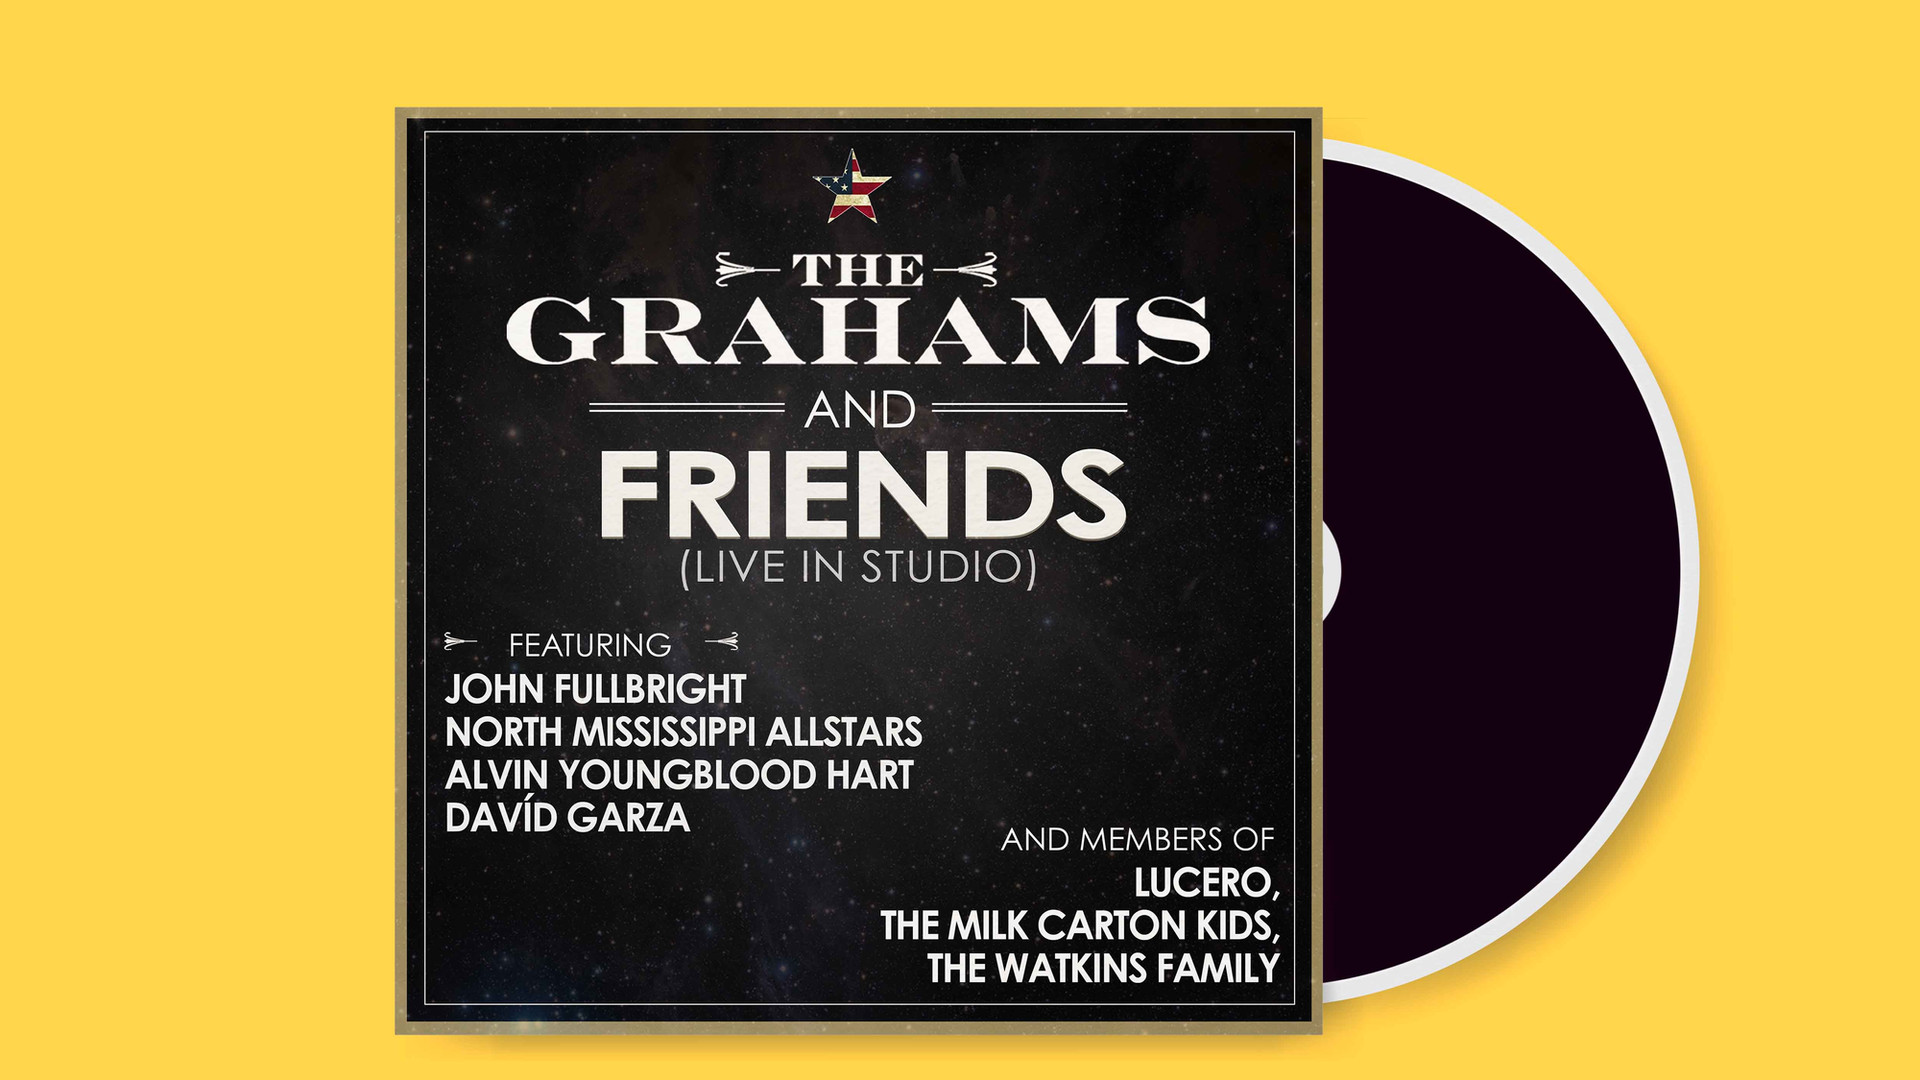 The Grahams and Friends (Studio)